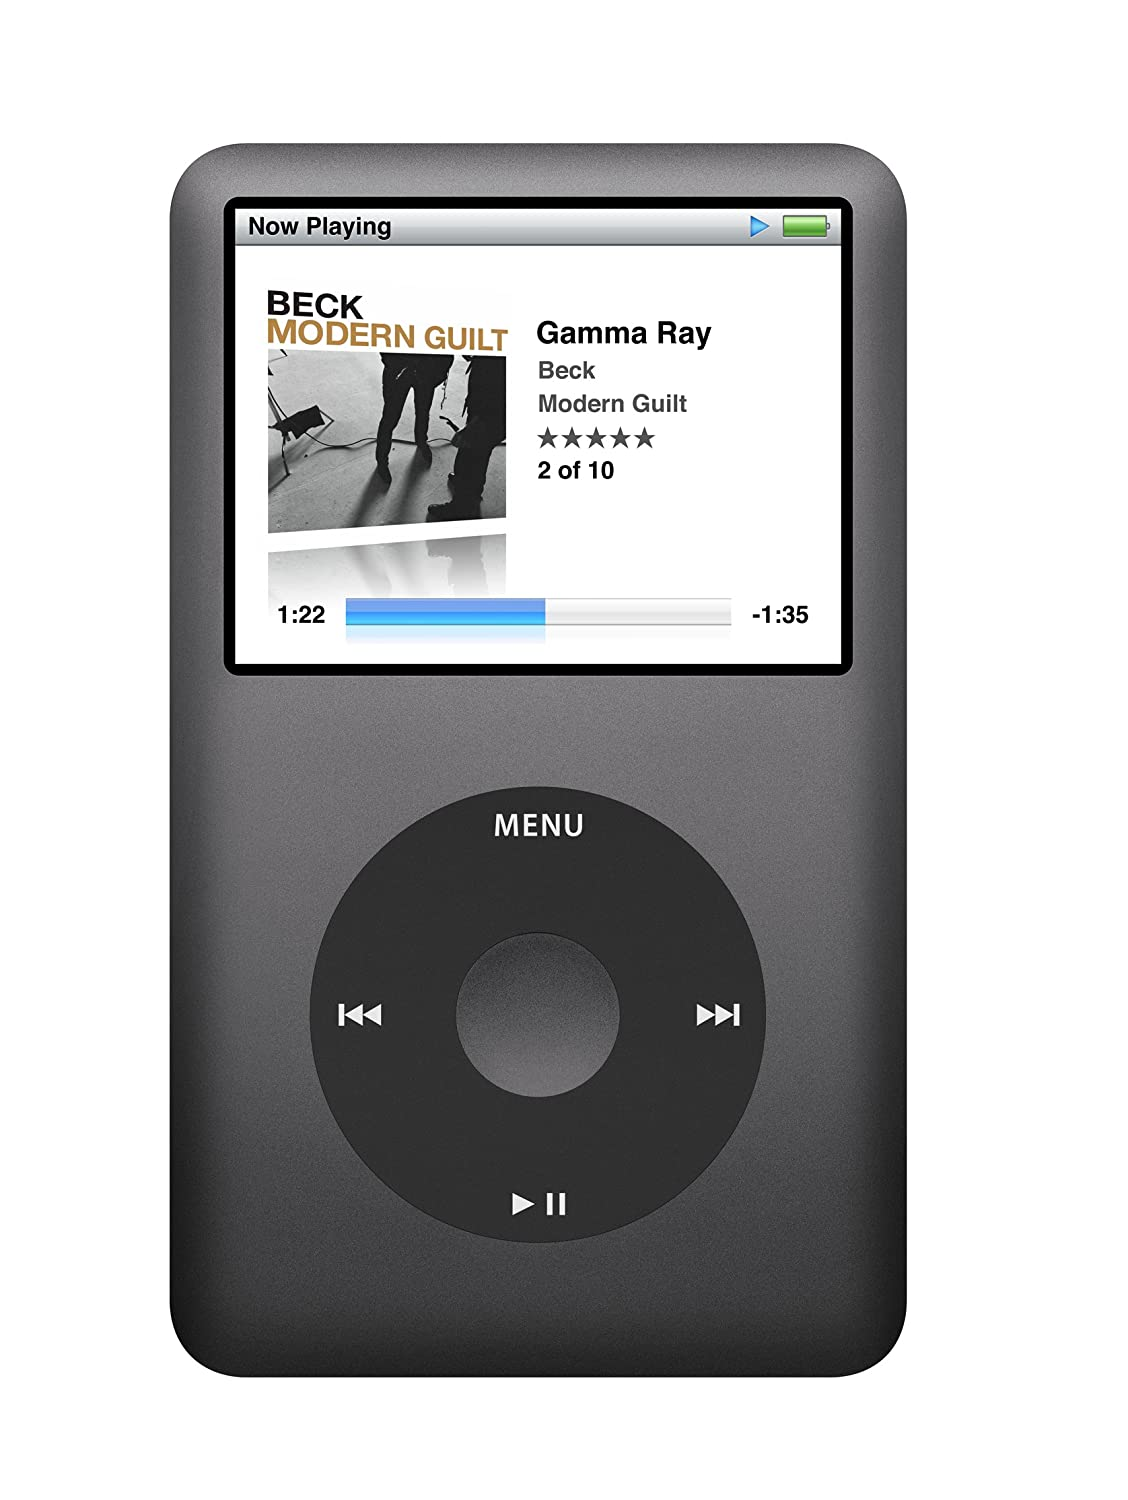 Apple iPod classic 120 GB Black 6th Generation (Discontinued by Manufacturer)